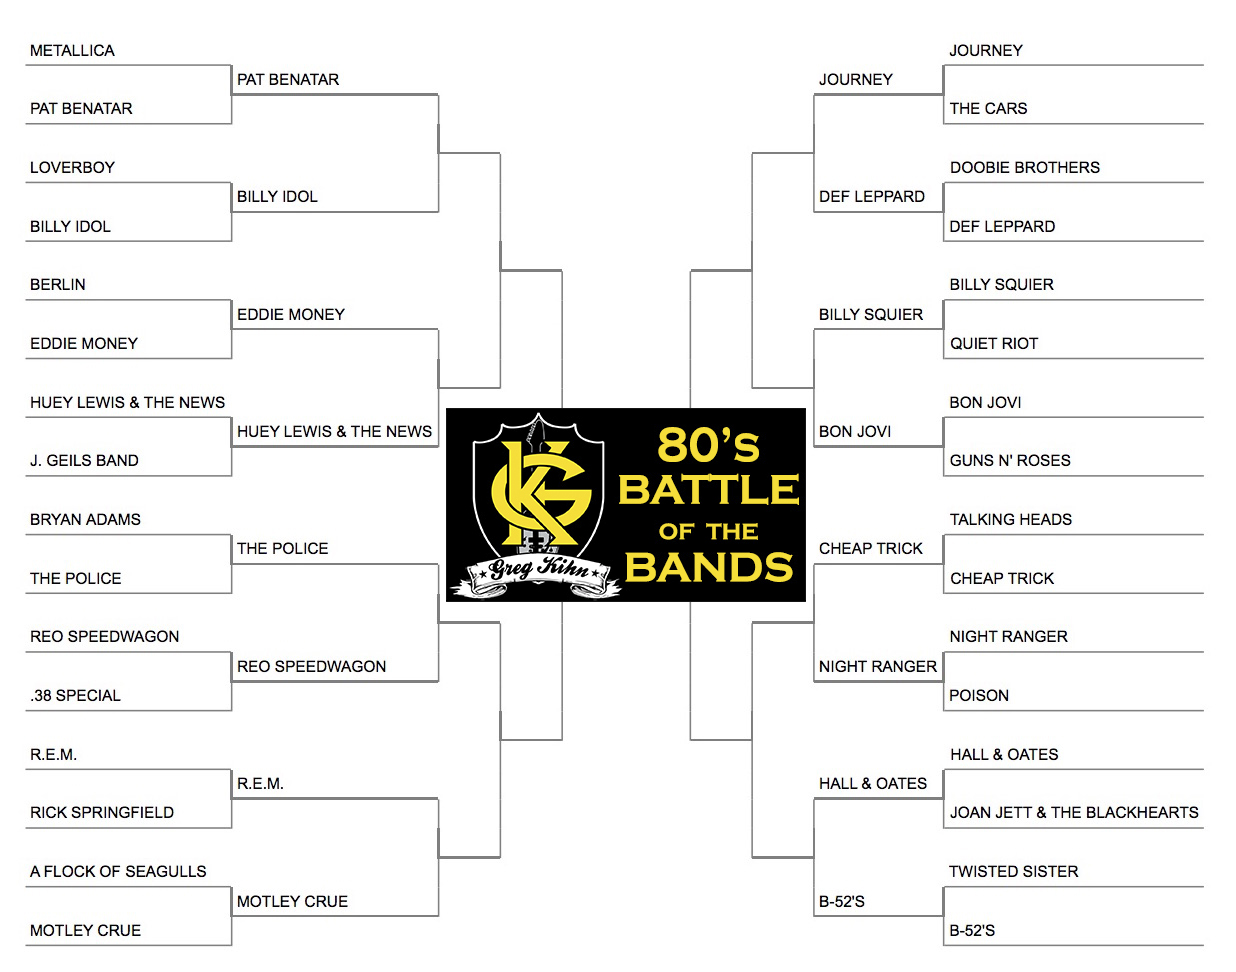 Greg Kihn's 80's Battle of the Bands Round 2 Halftime Update